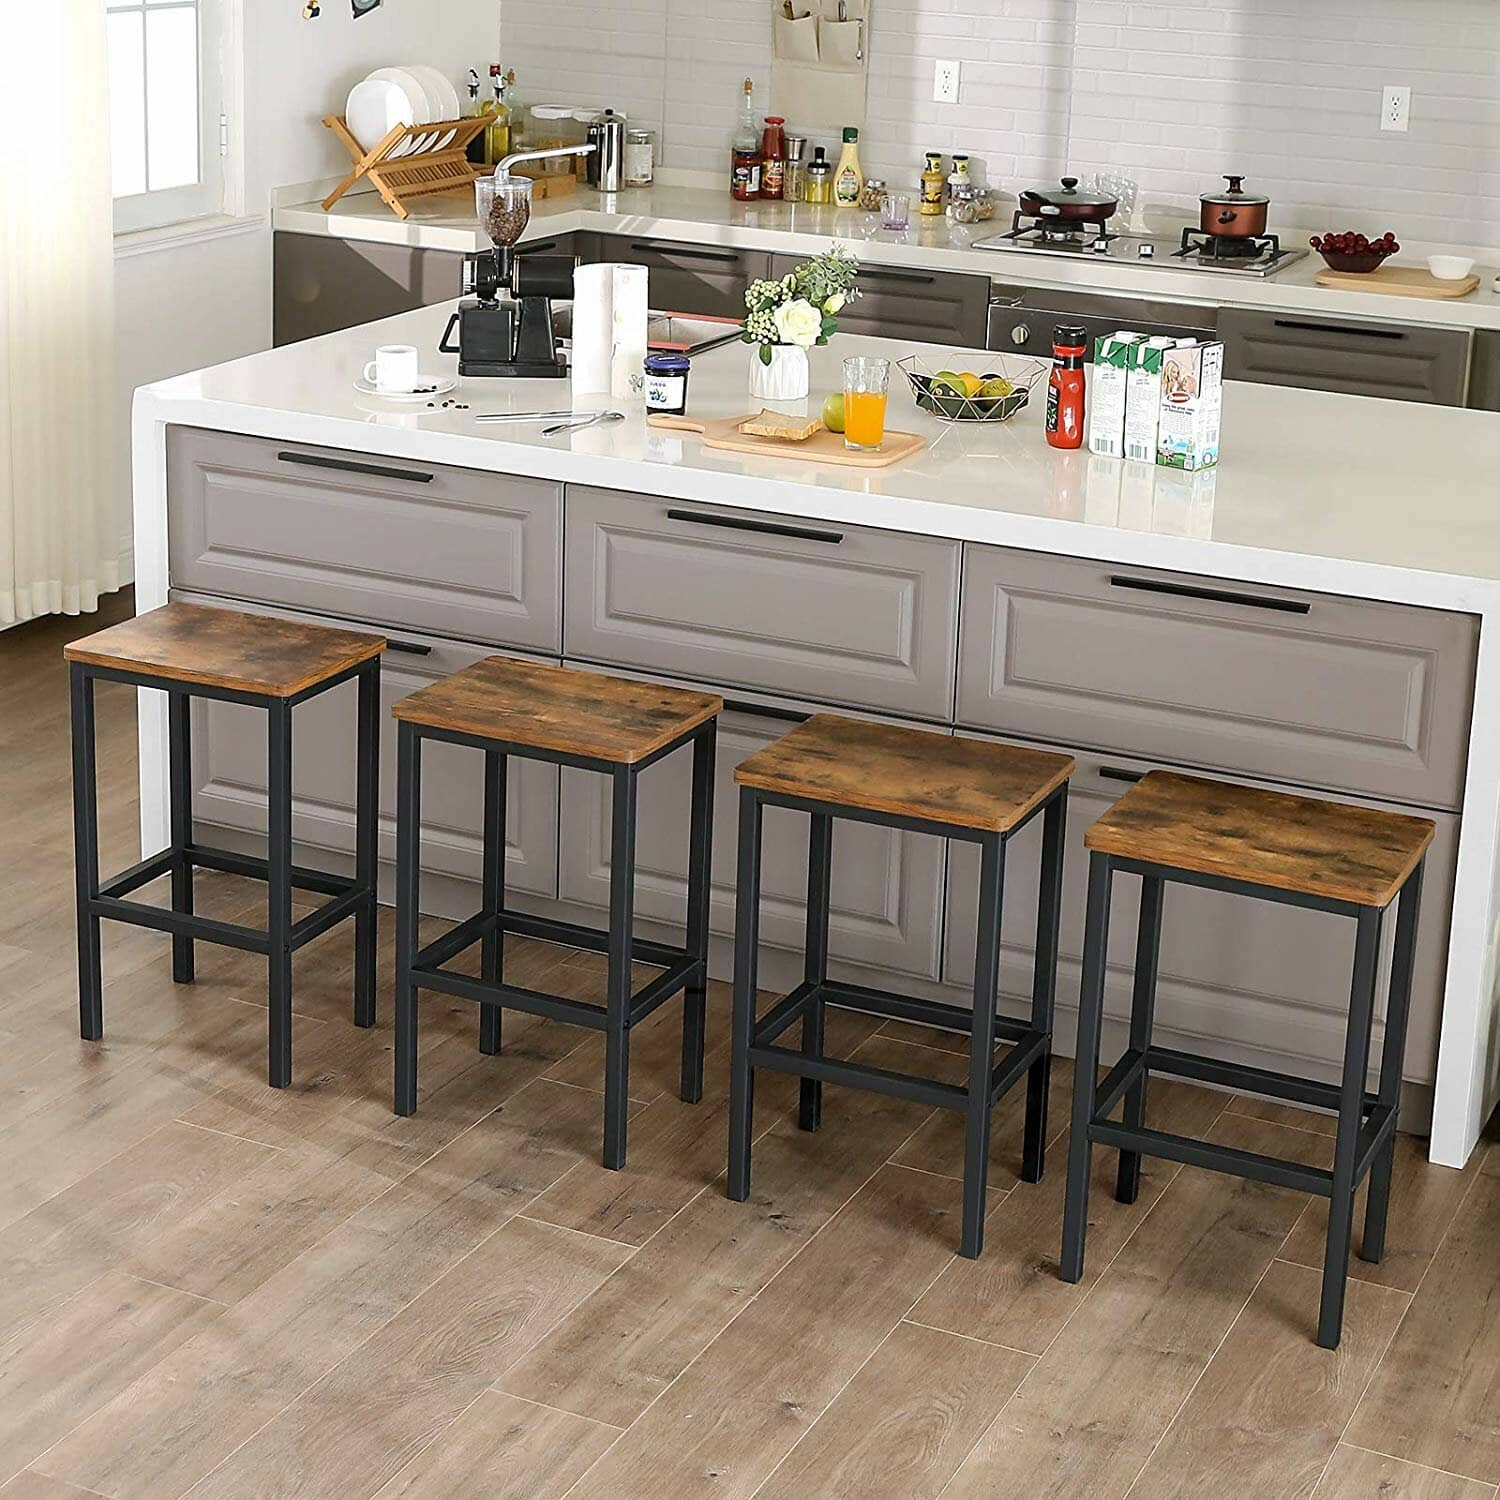 Save Space with Compact Kitchen Island Bar Stools